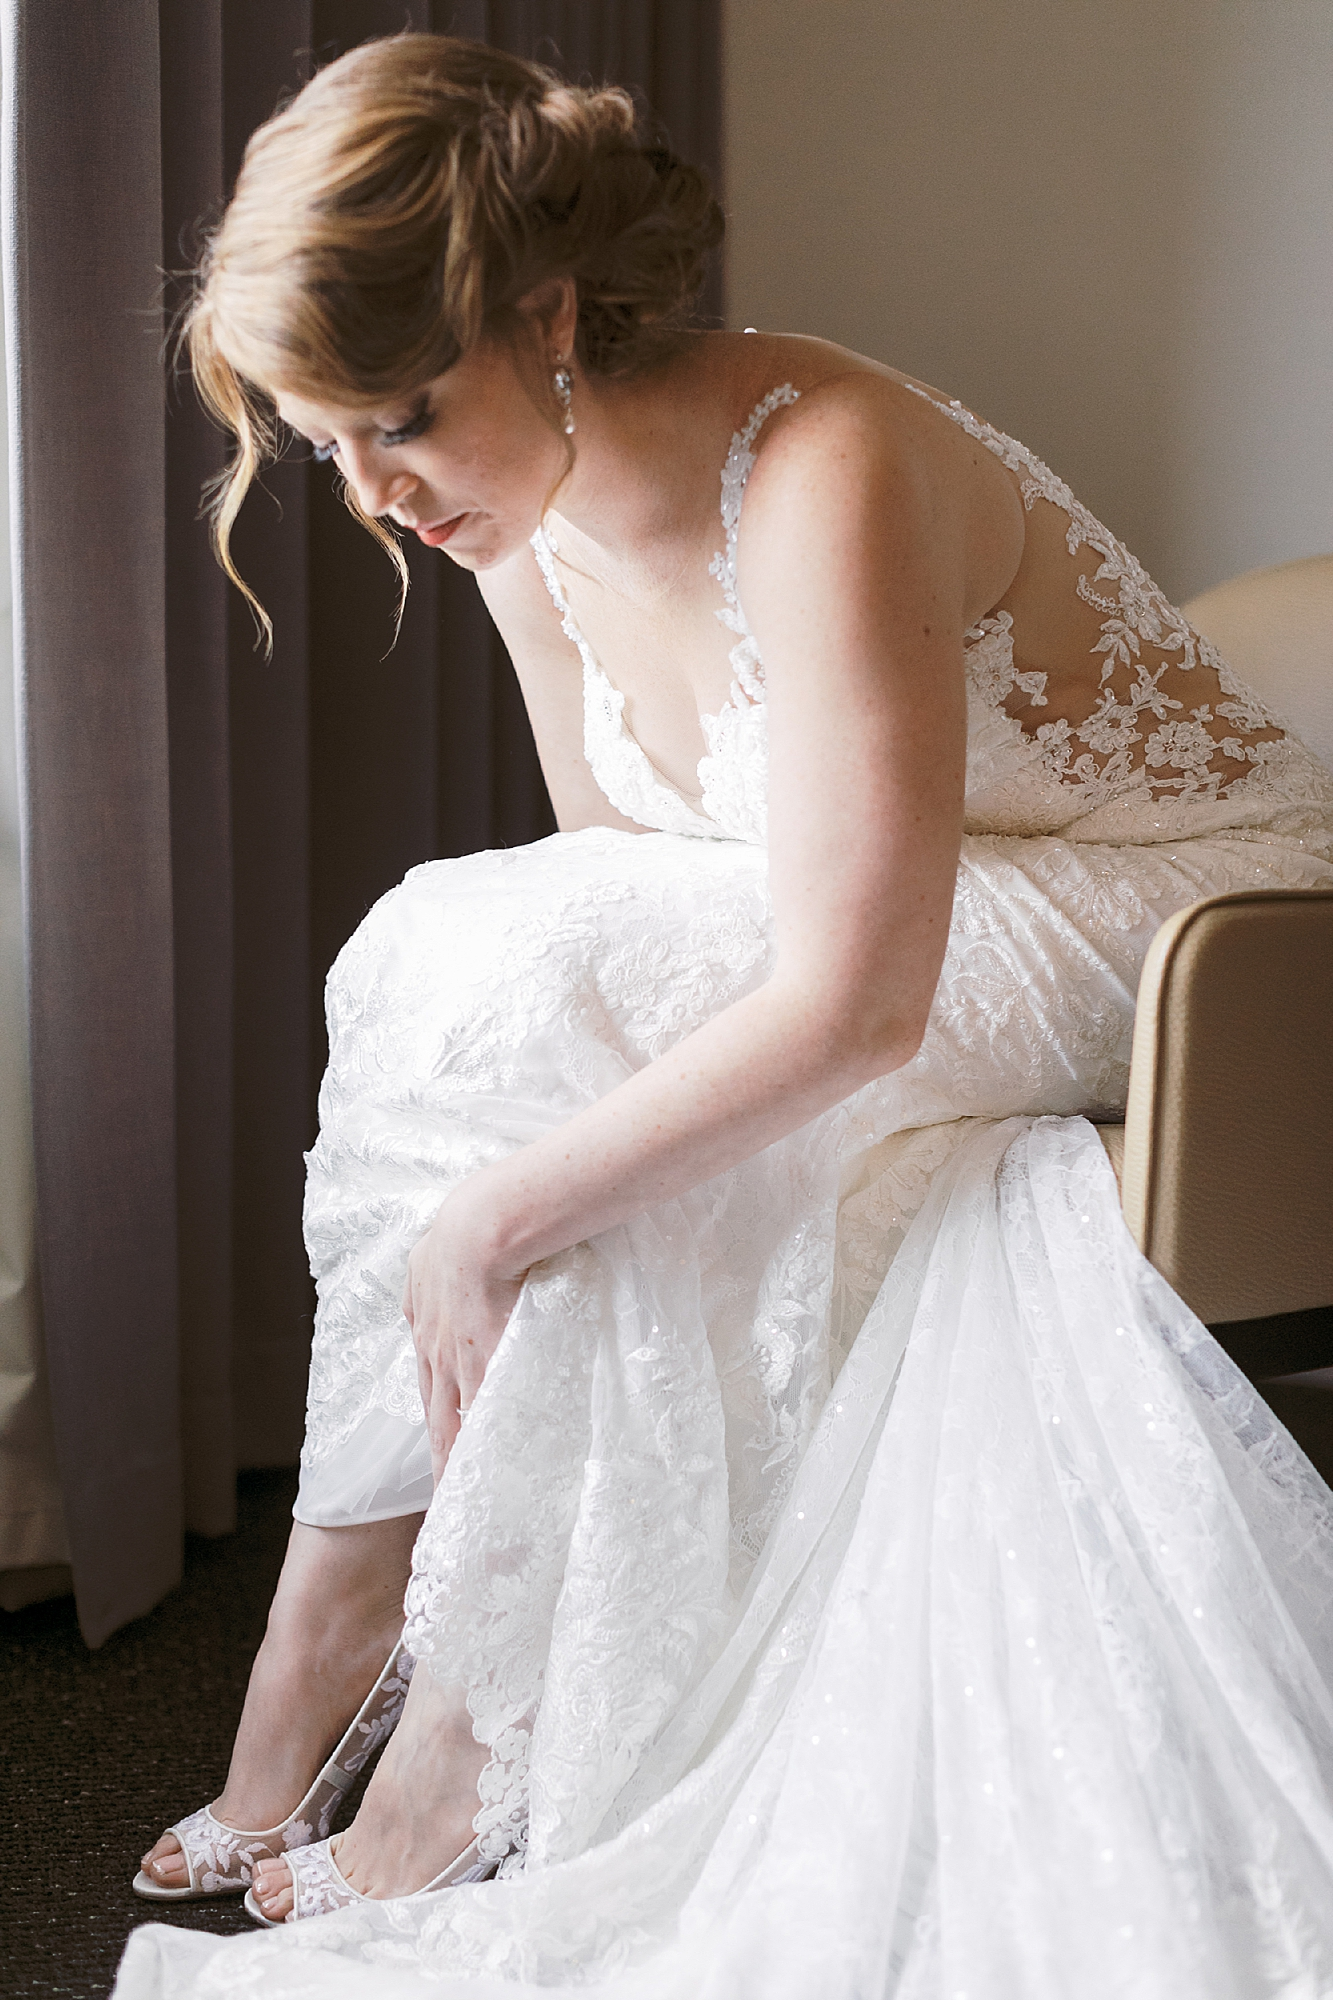 Genuine and Natural Philadelphia Wedding Photography by Magdalena Studios 0011 1